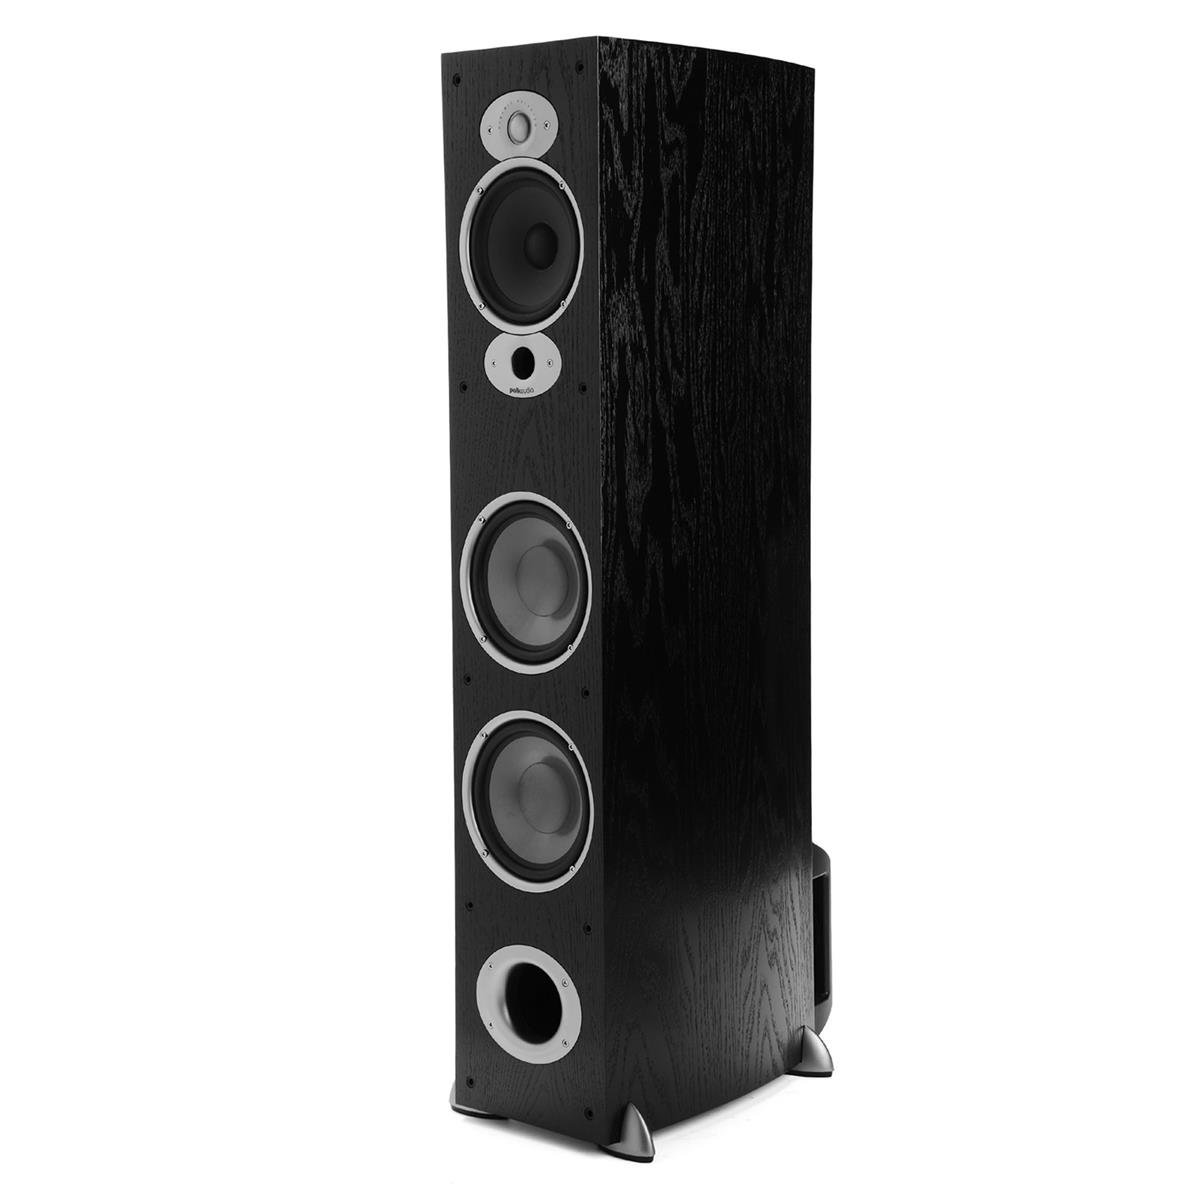 Polk Audio RTI A7 Floorstanding Speaker (Single, Black) by Polk Audio